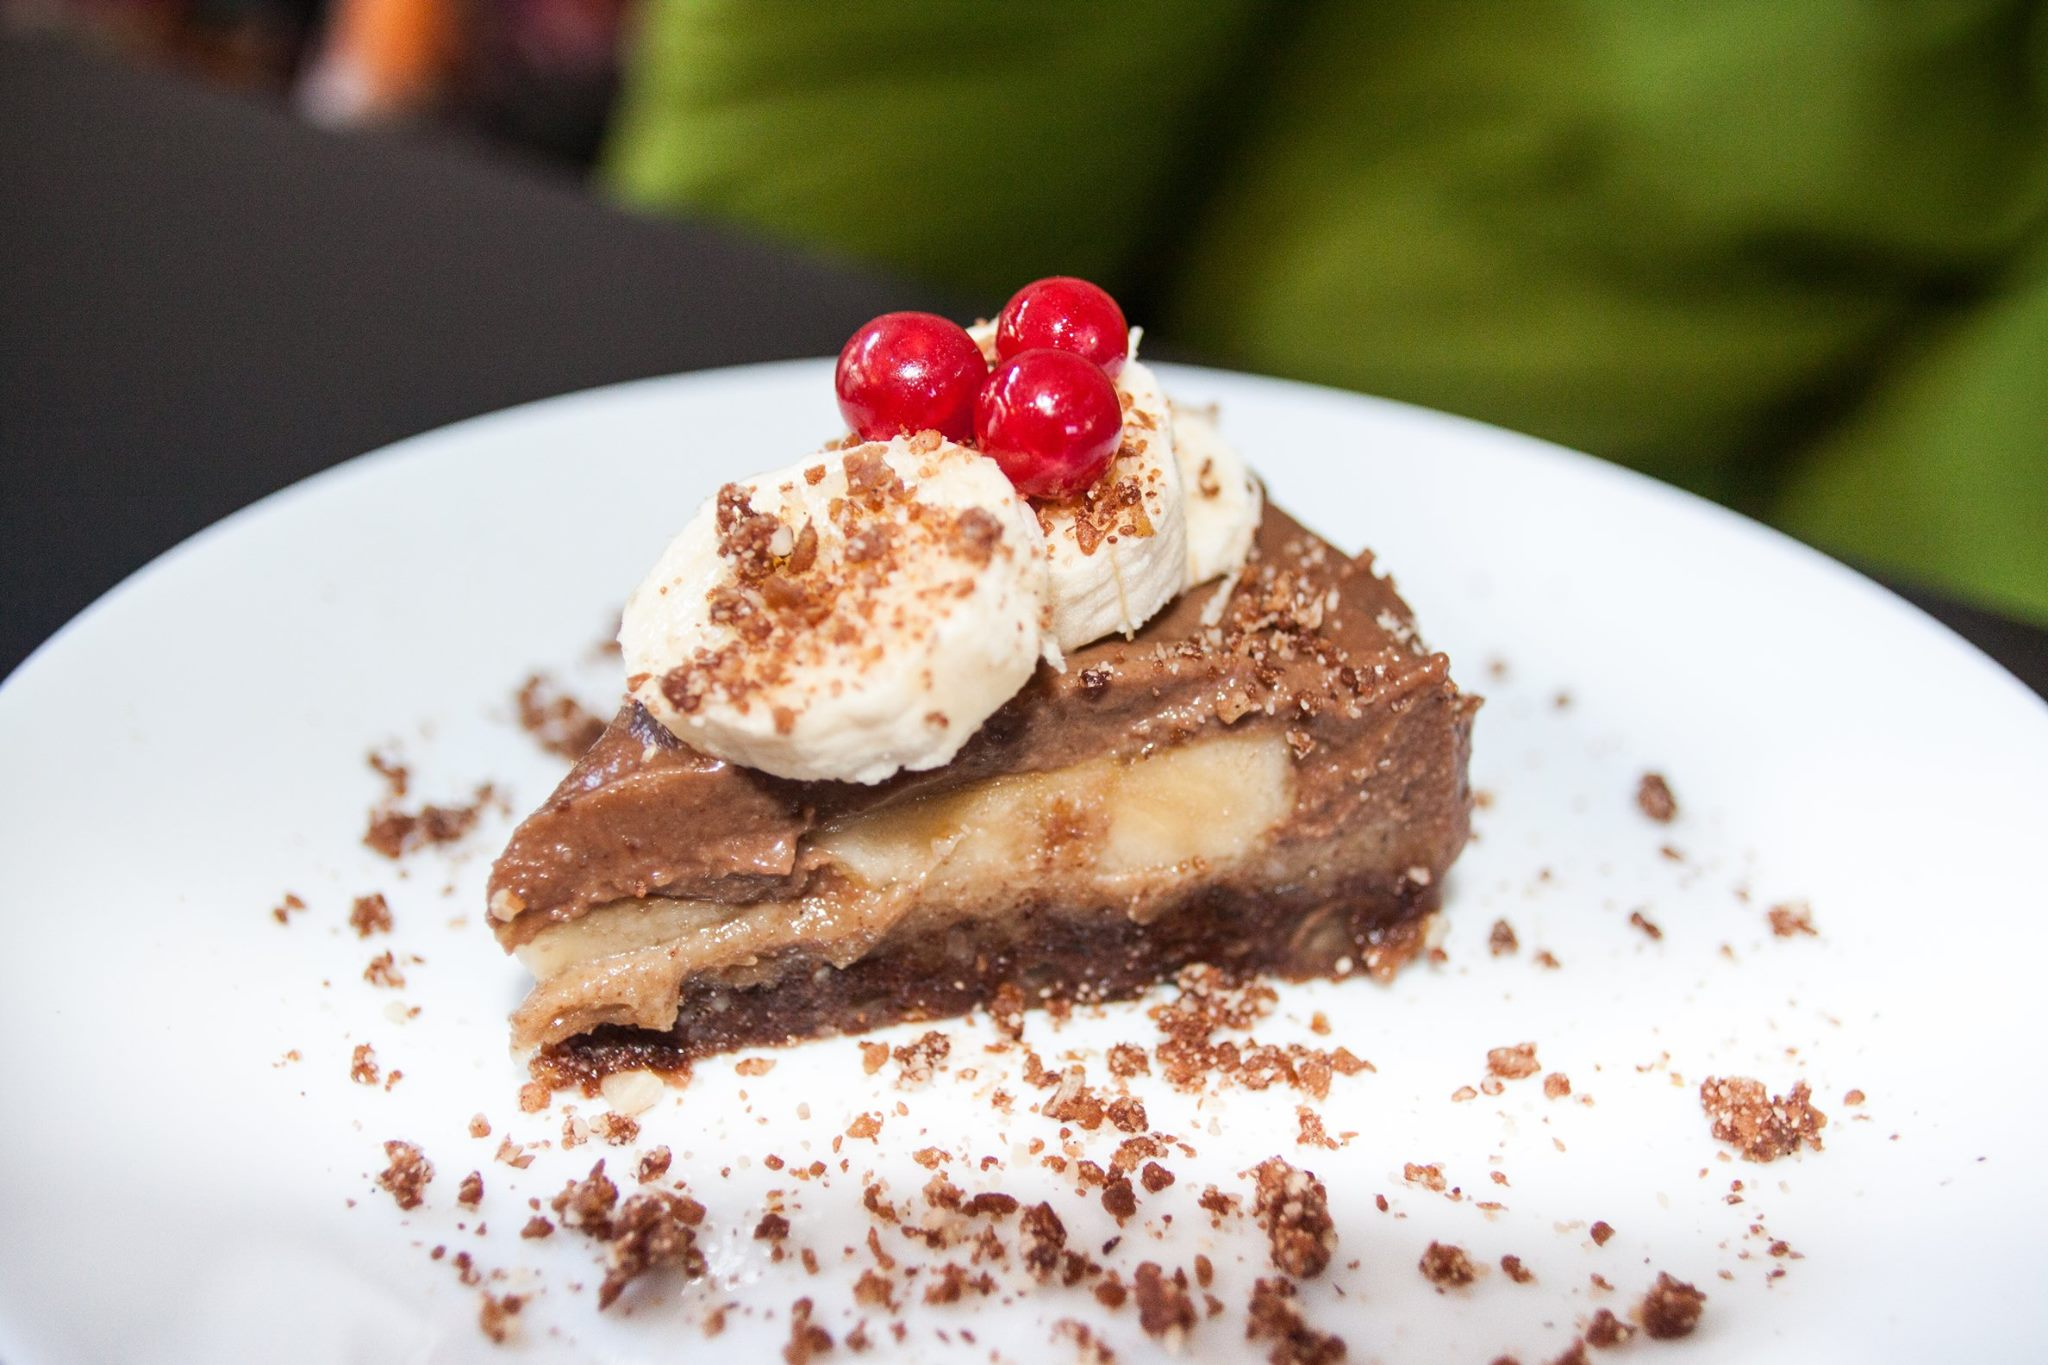 Delicious mouth-watering deserts are included in the menu of vegan Lime Bistro in Athens. Source: Lime Bistro